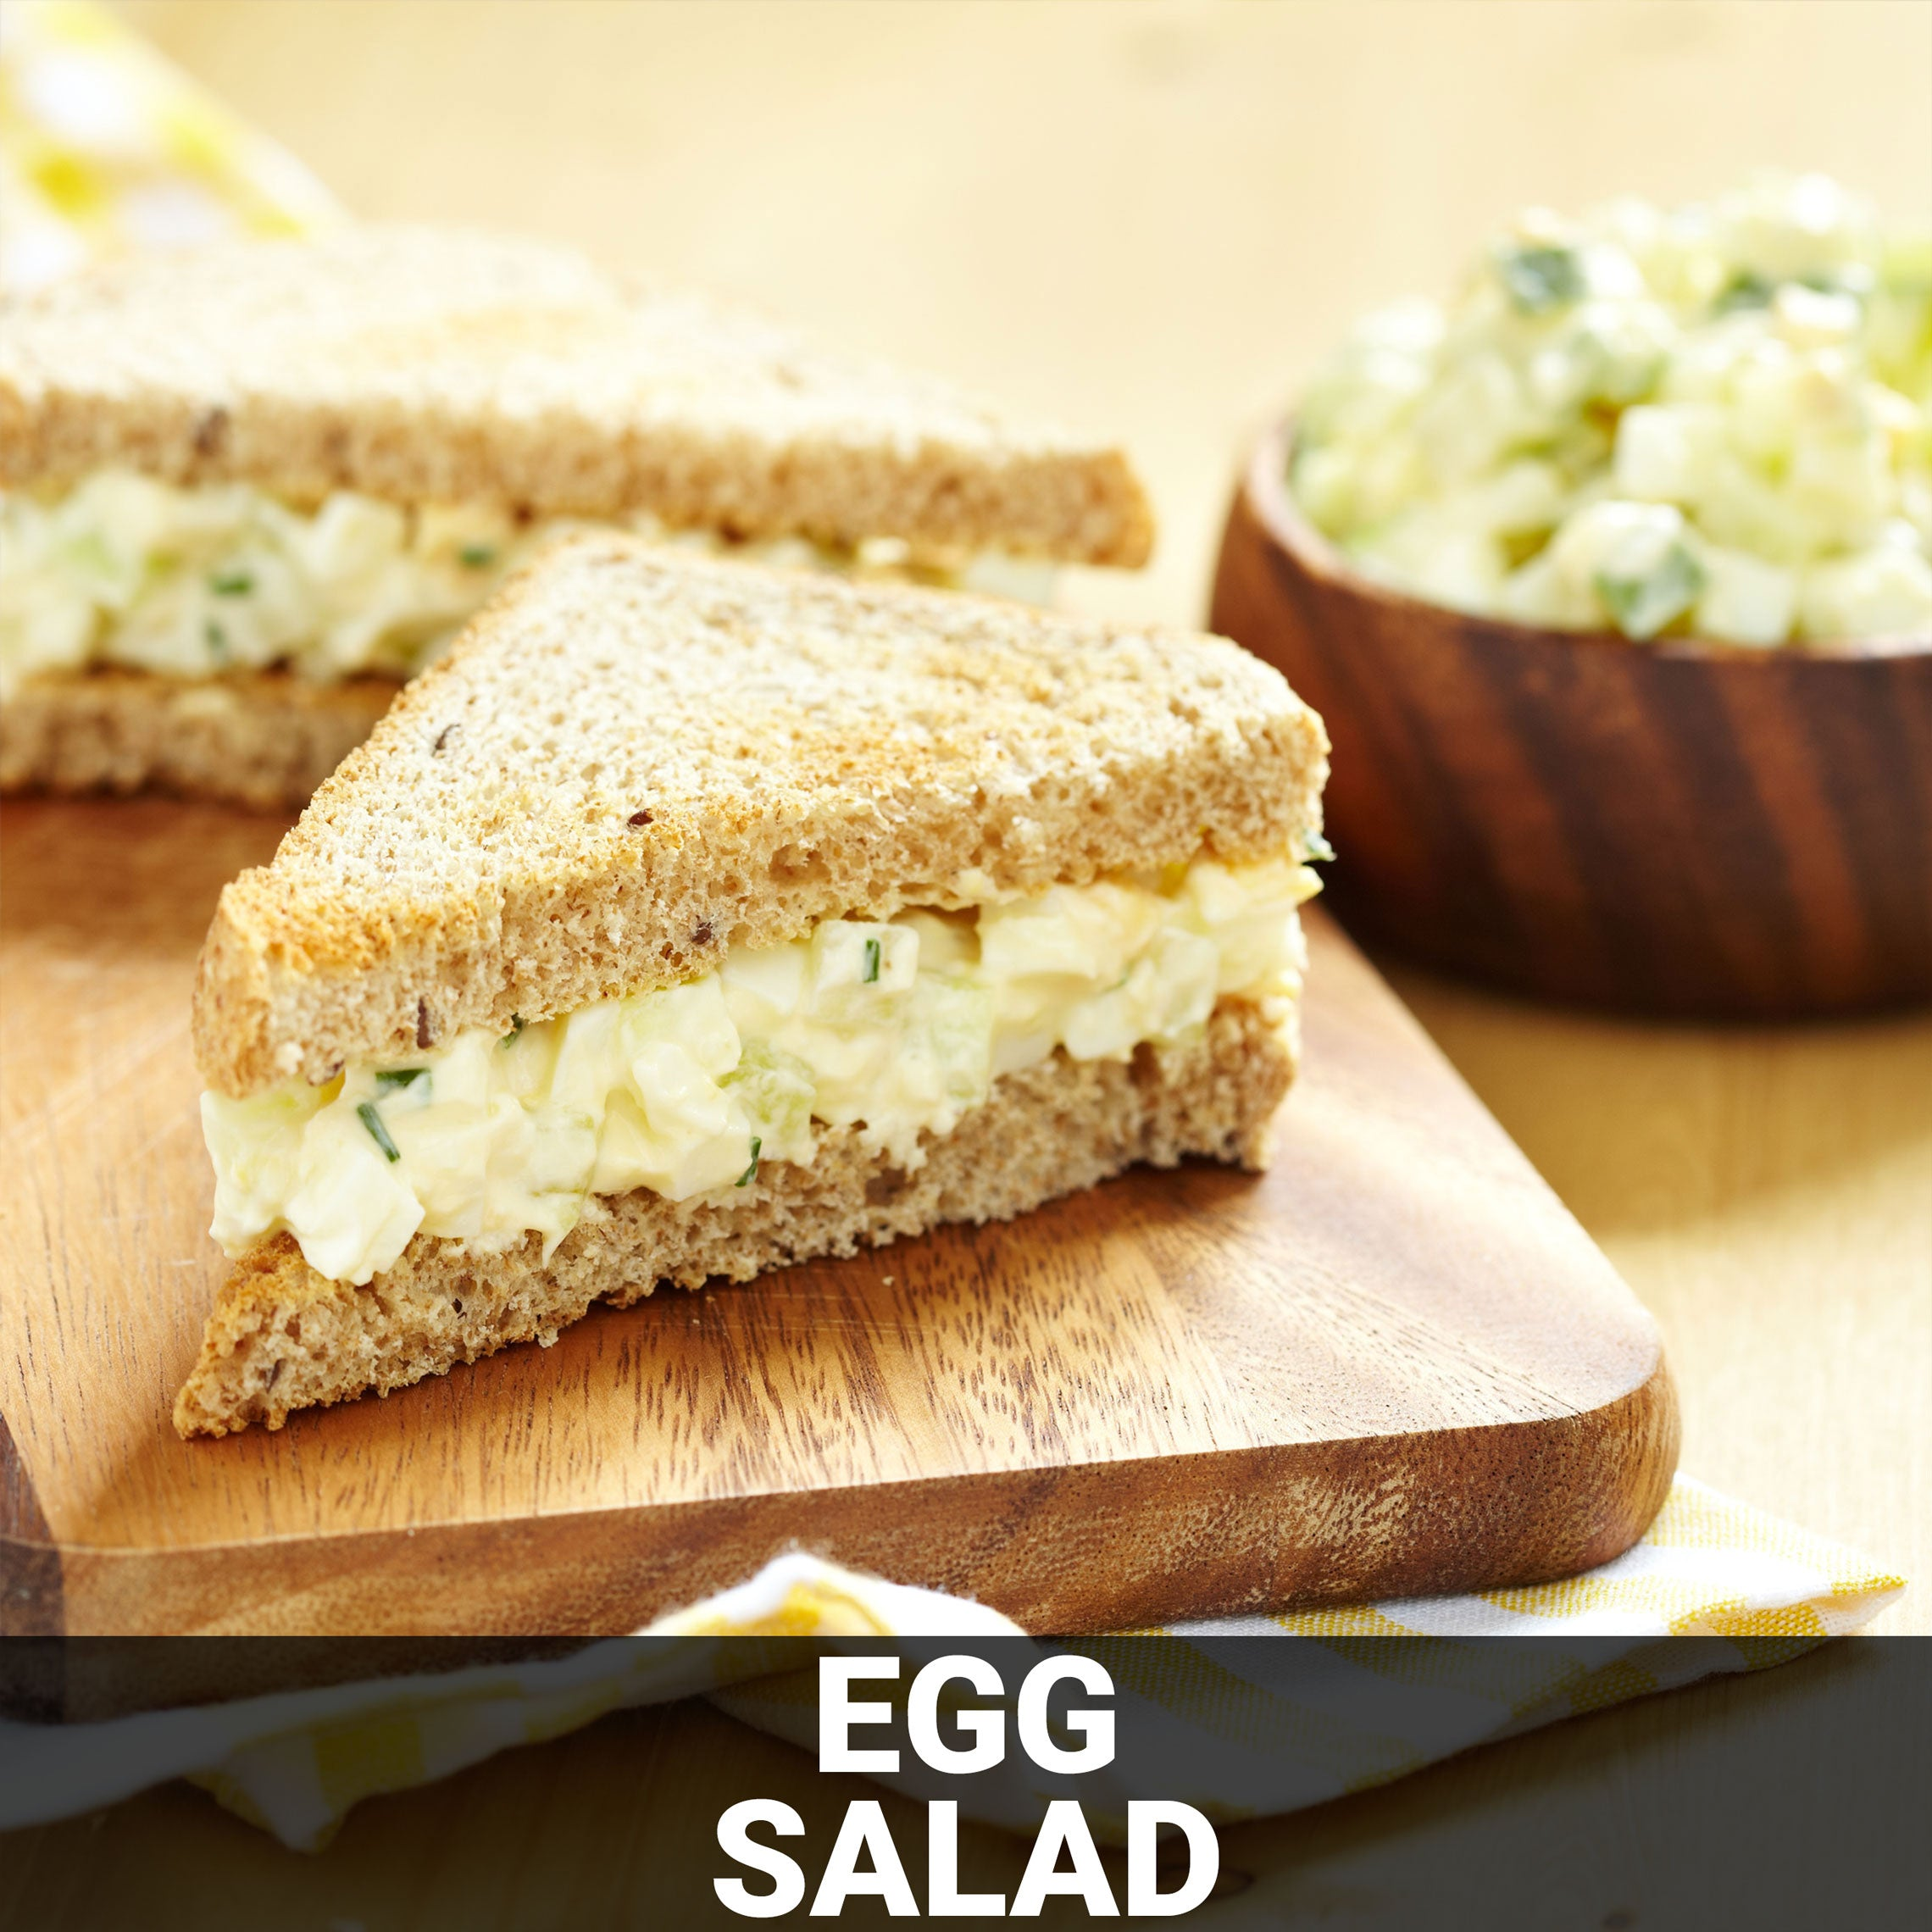 Egg Salad Recipe - Foods Alive